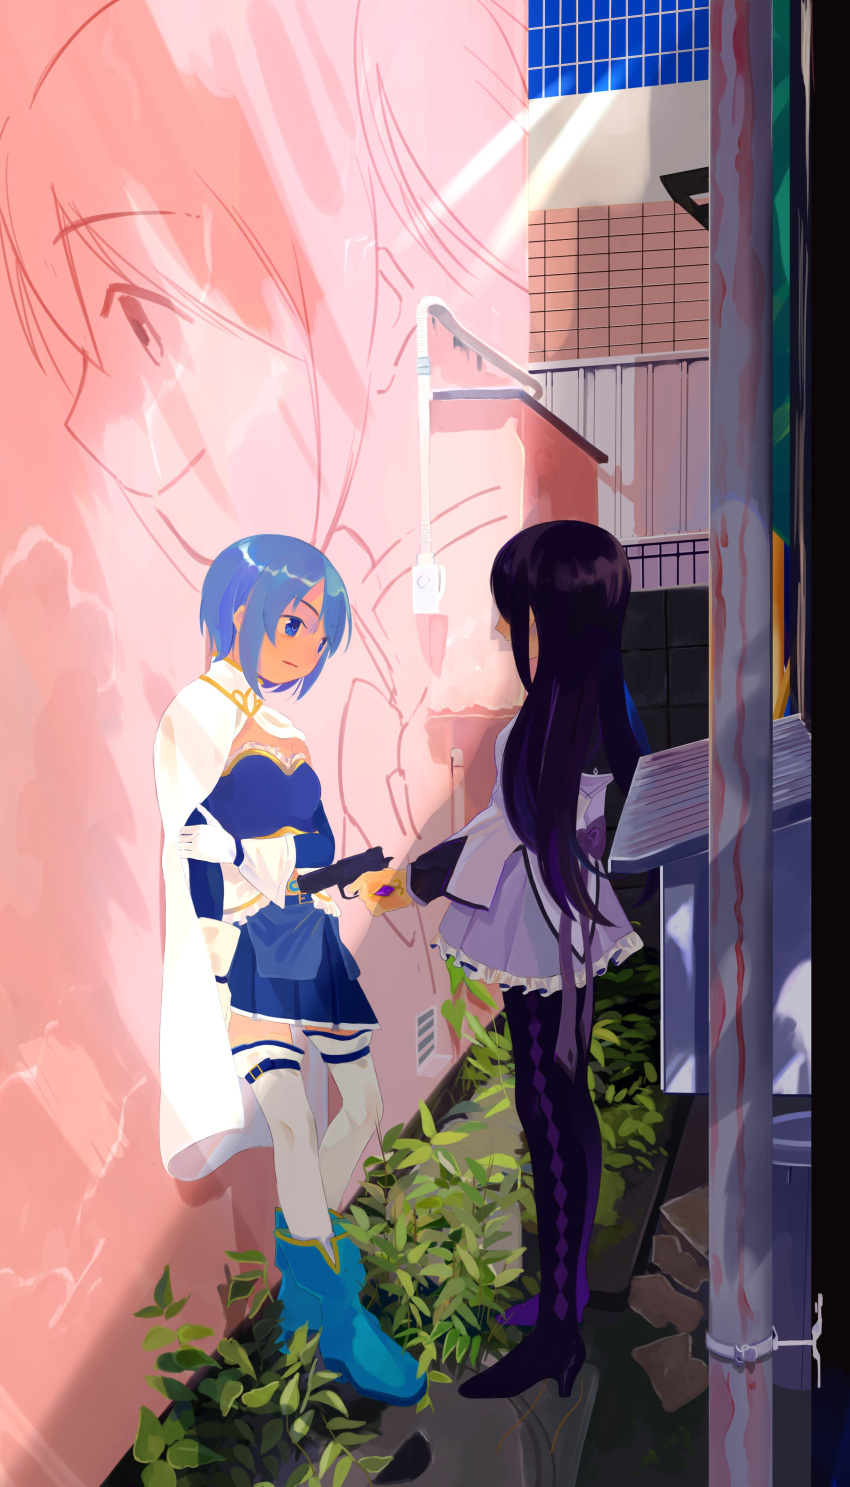 2girls absurdres against_wall aiming akemi_homura alley ankle_boots argyle argyle_legwear arm_at_side back_bow balcony bangs belt black_hair black_legwear blue_belt blue_eyes blue_footwear blue_hair blue_skirt boots bow breasts cape character_print closed_mouth commentary_request day expressionless eyebrows_visible_through_hair facing_away facing_viewer frilled_skirt frills from_side frown full_body gloves gun hair_over_face hand_on_own_arm handgun happy high_collar highres holding holding_gun holding_weapon kaname_madoka leaf leaning leaning_back legs_together long_hair looking_afar looking_at_another mahou_shoujo_madoka_magica medium_breasts miki_sayaka multiple_girls neck_ribbon outdoors outstretched_hand pantyhose parted_lips pipes pistol plant pleated_skirt pointing_weapon profile purple_ribbon purple_skirt ribbon sate_(ryu_ryu_1212m) shadow shiny shiny_hair short_hair skirt smile soul_gem standing straight_hair strapless sunlight symbolism talking thigh-highs tile_wall tiles twintails ventilation_shaft wall weapon white_cape white_gloves white_legwear